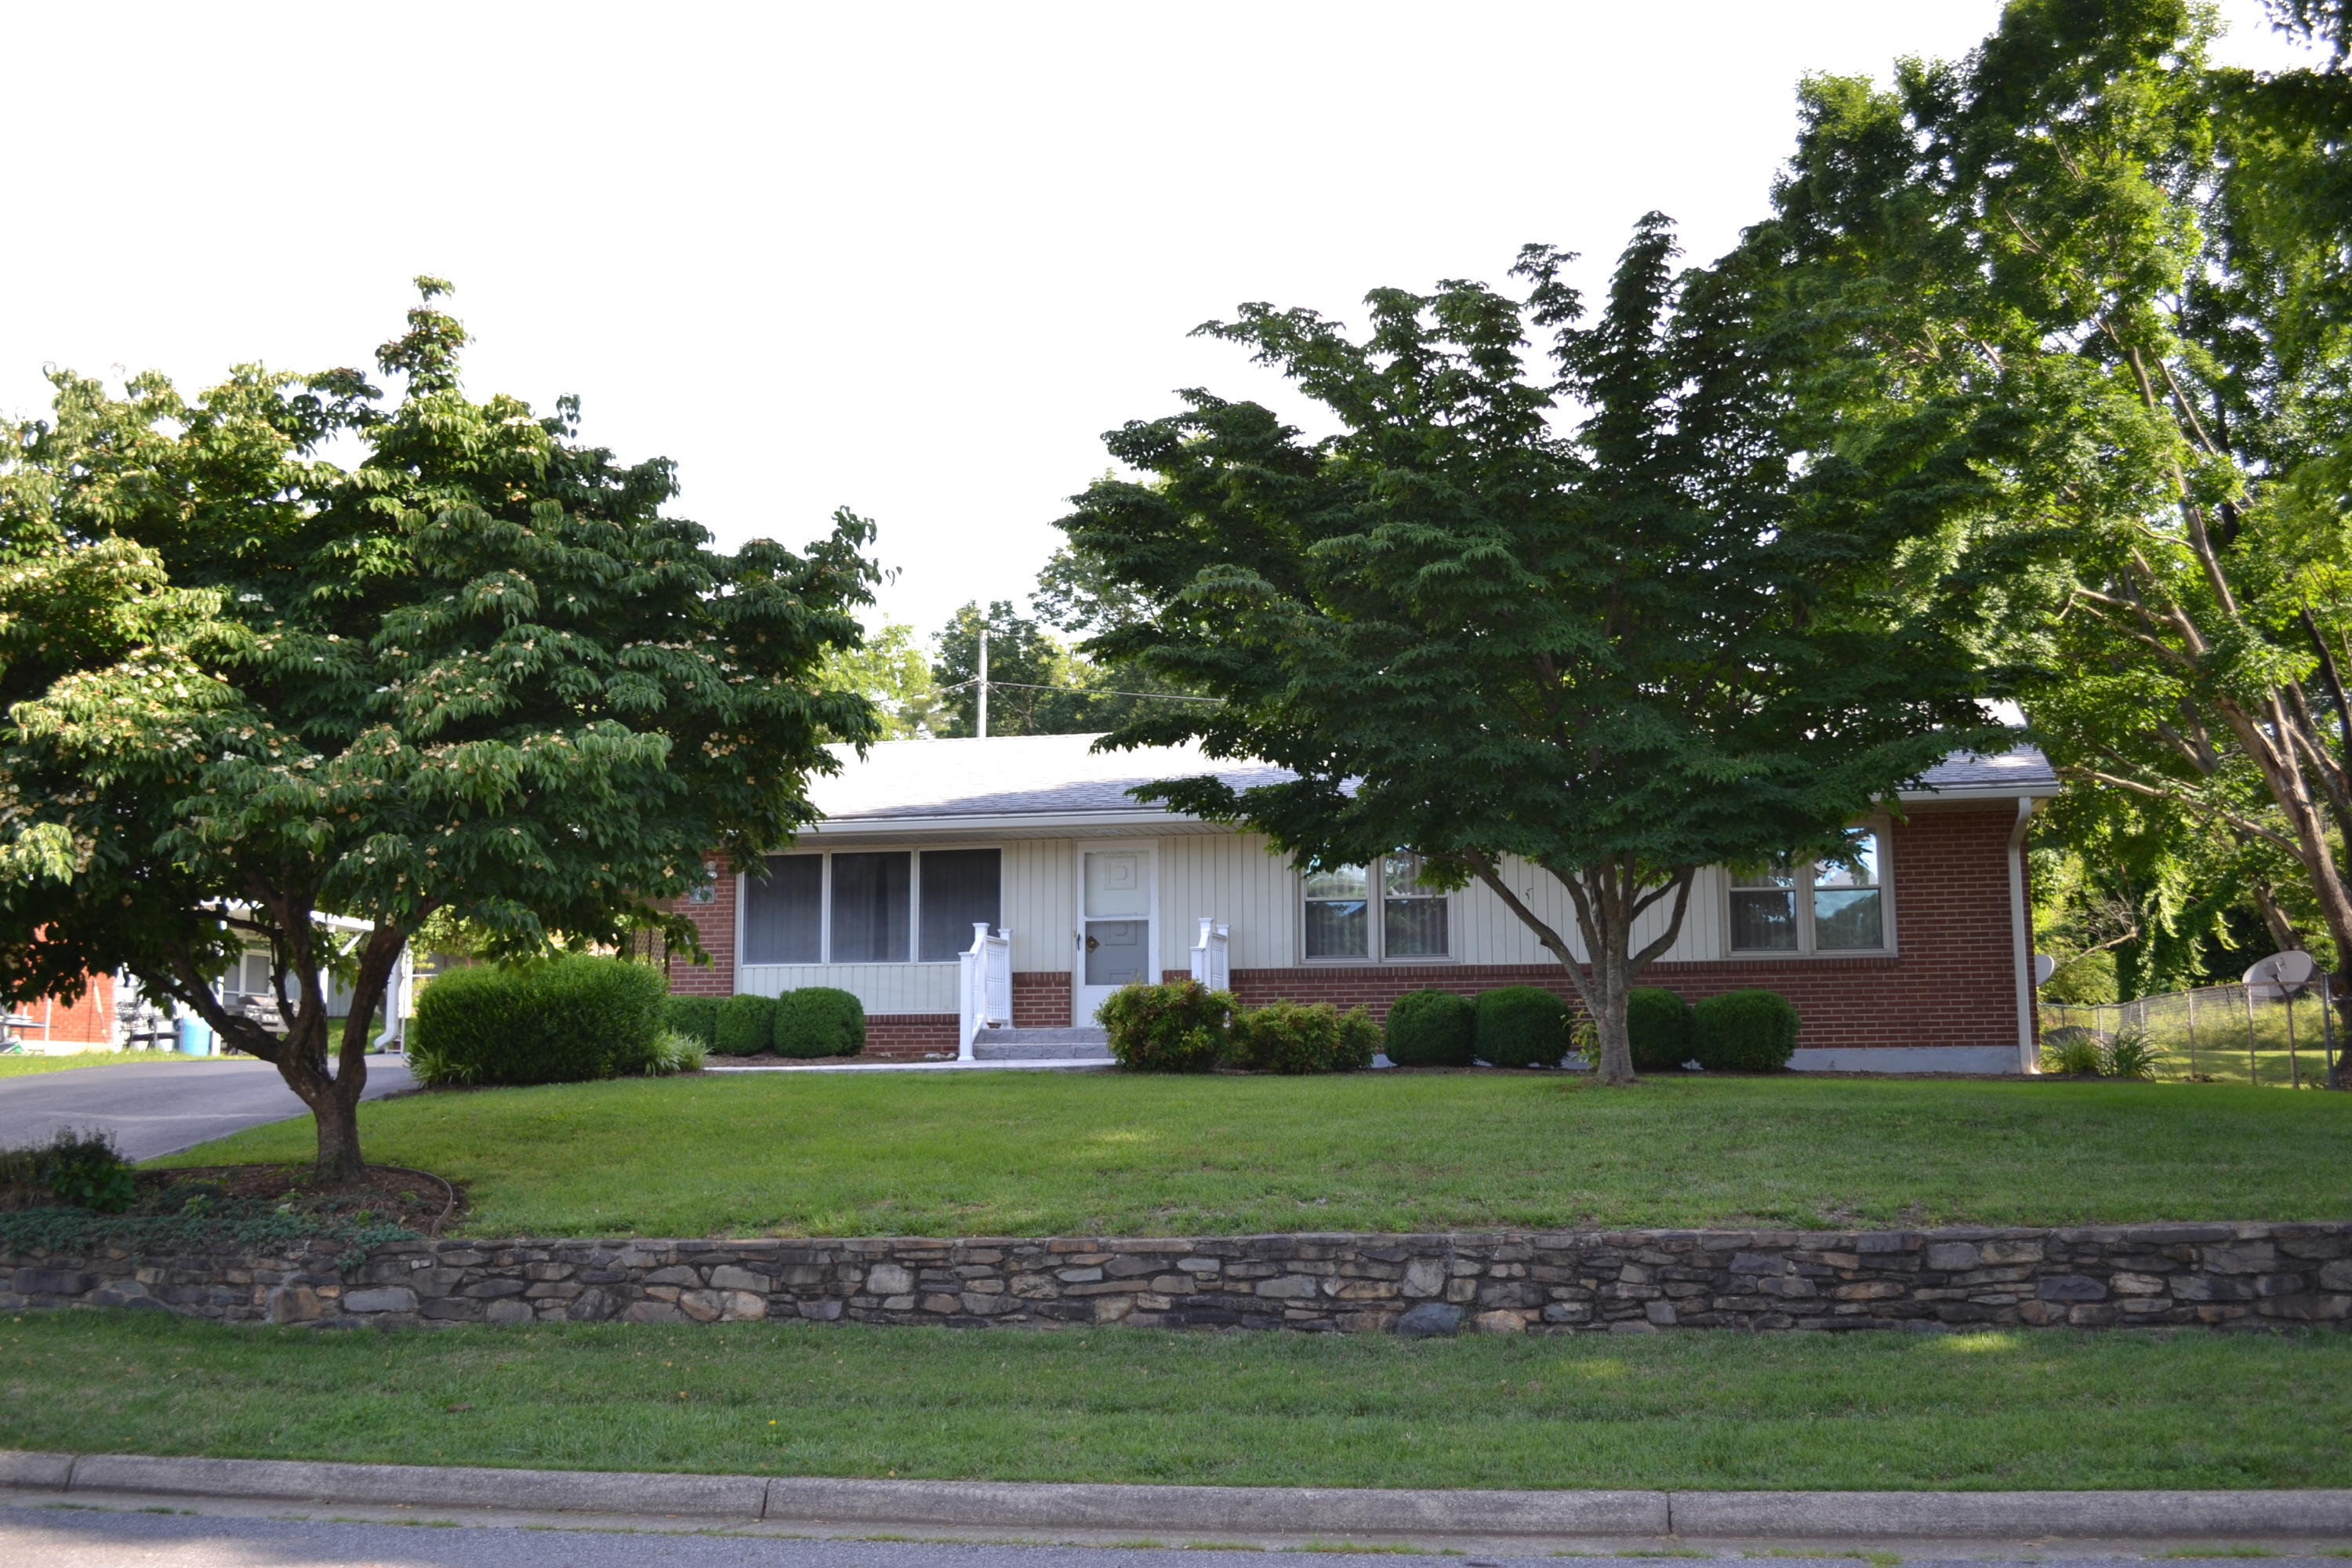 Residential for Sale at 4531 Fontaine Dr Roanoke, Virginia 24018 United States